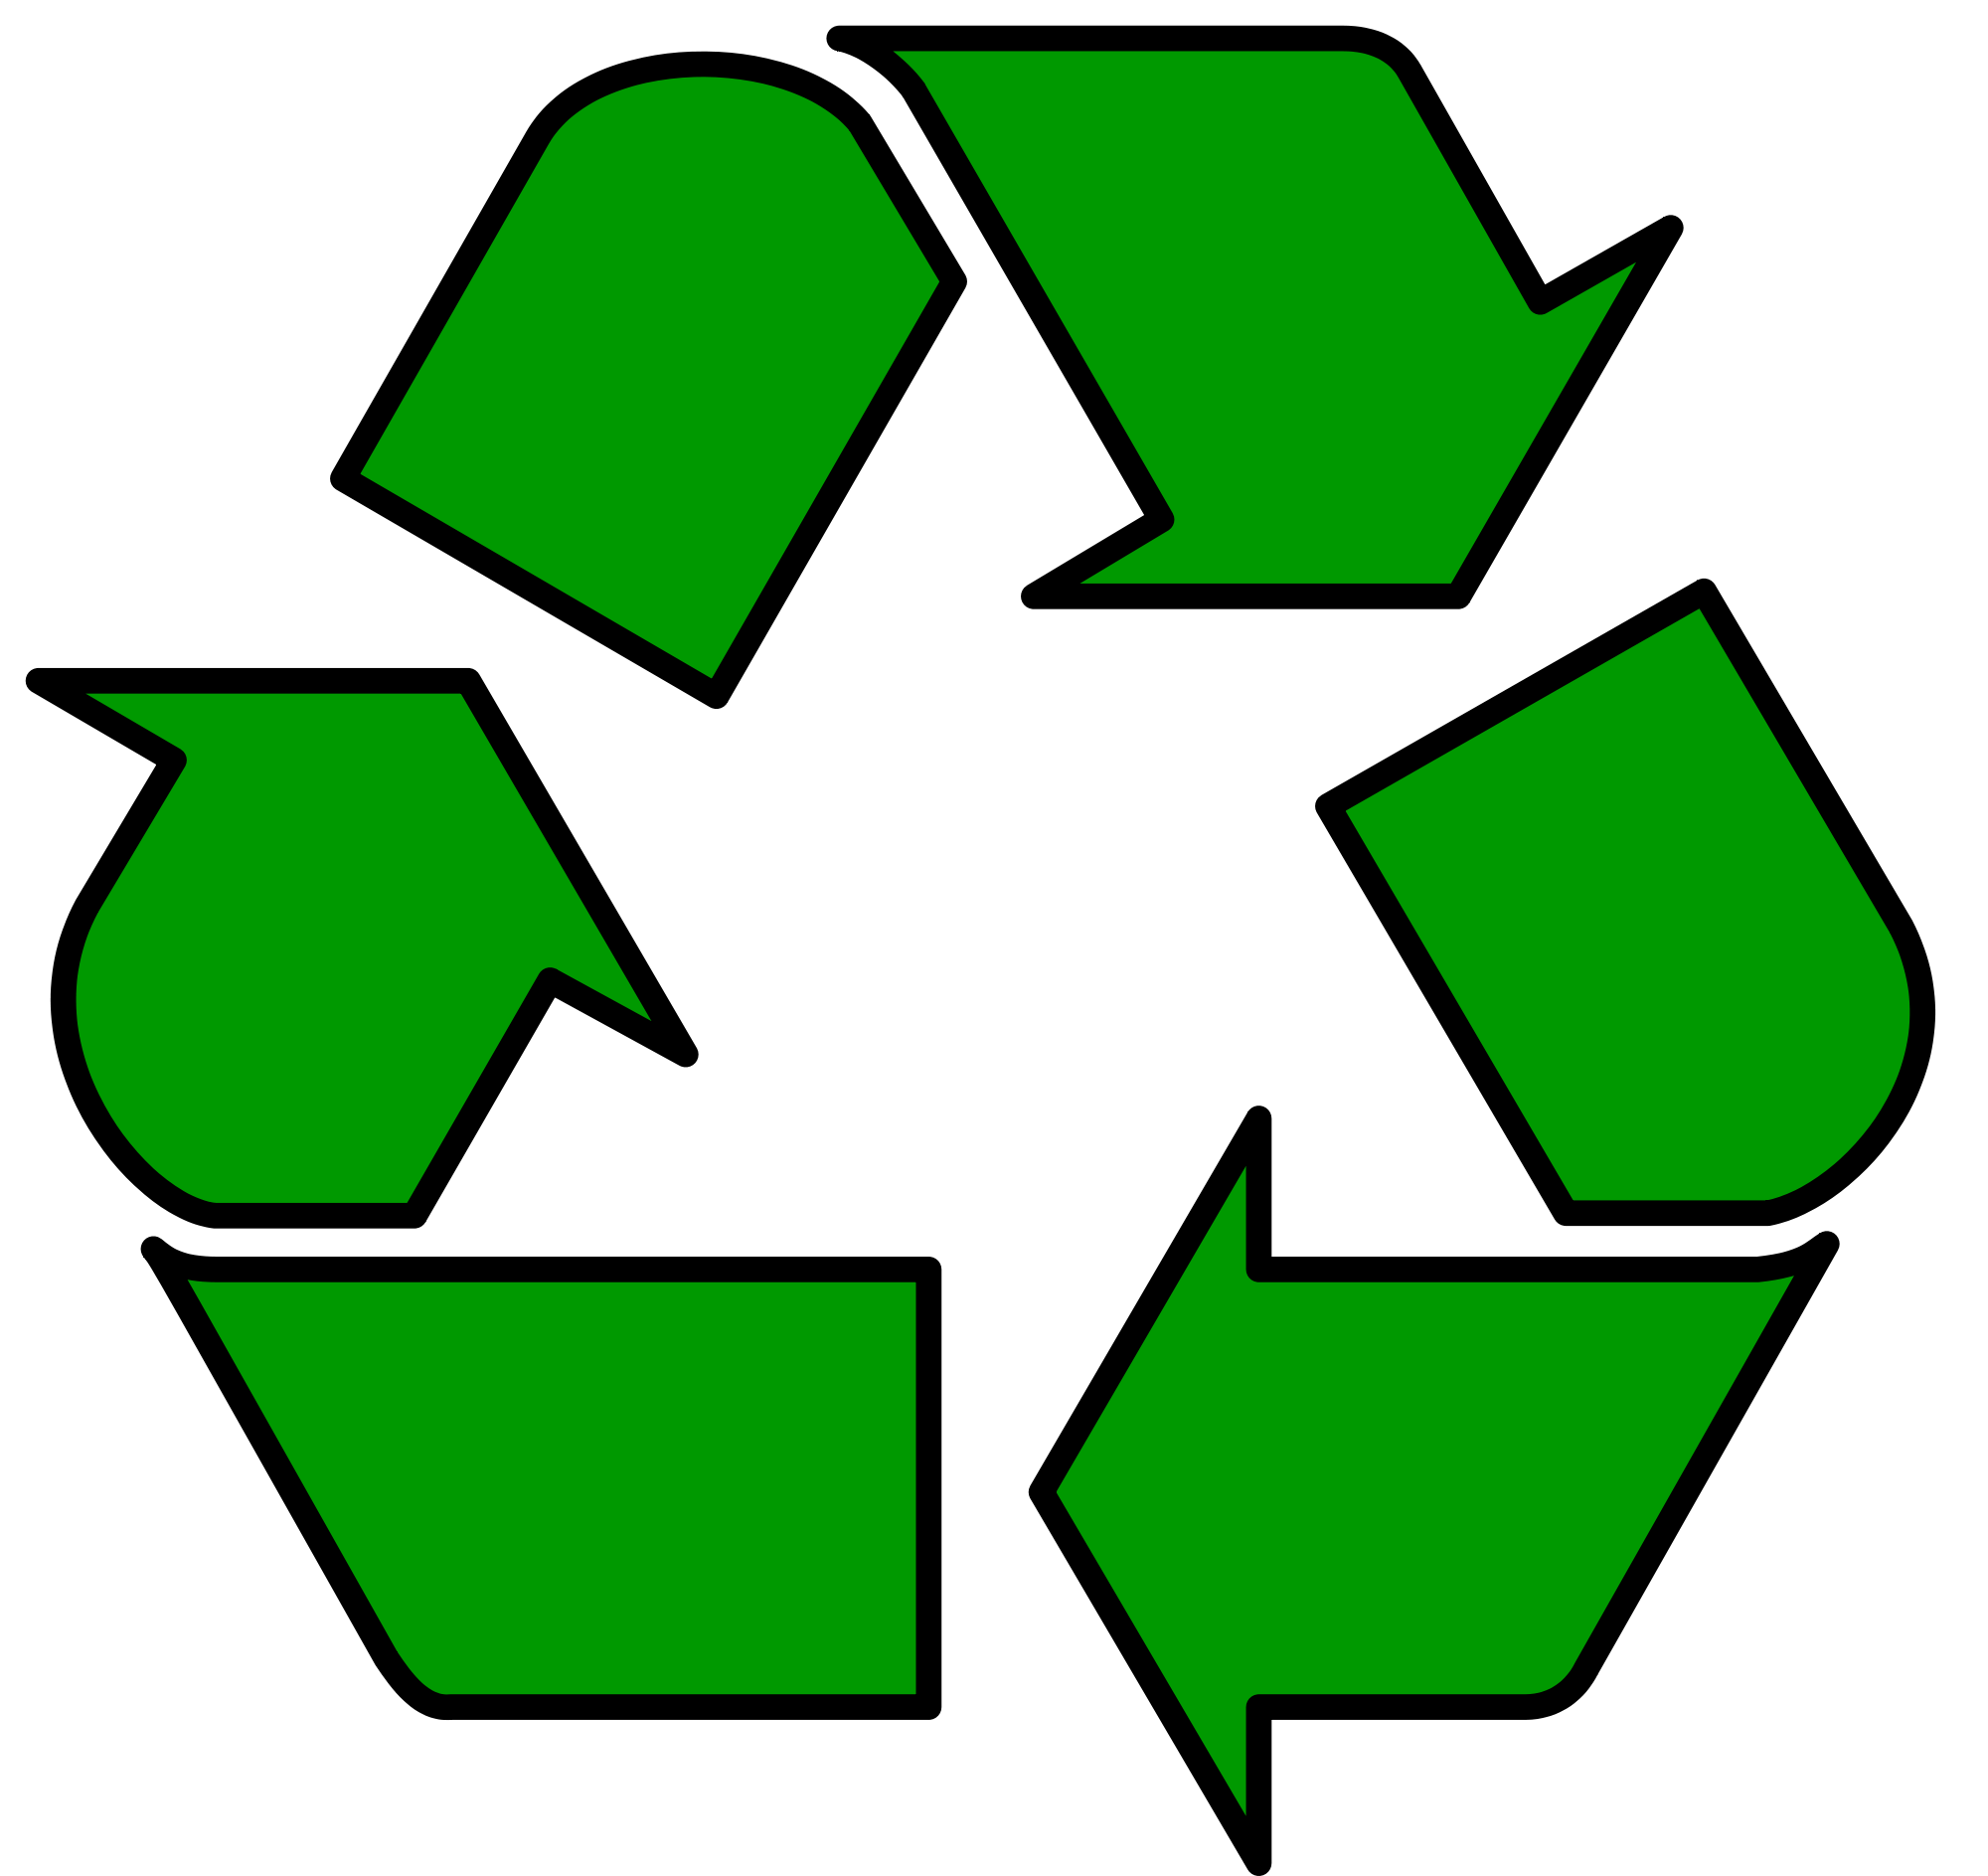 Recycle symbol clip art clipart images gallery for free.